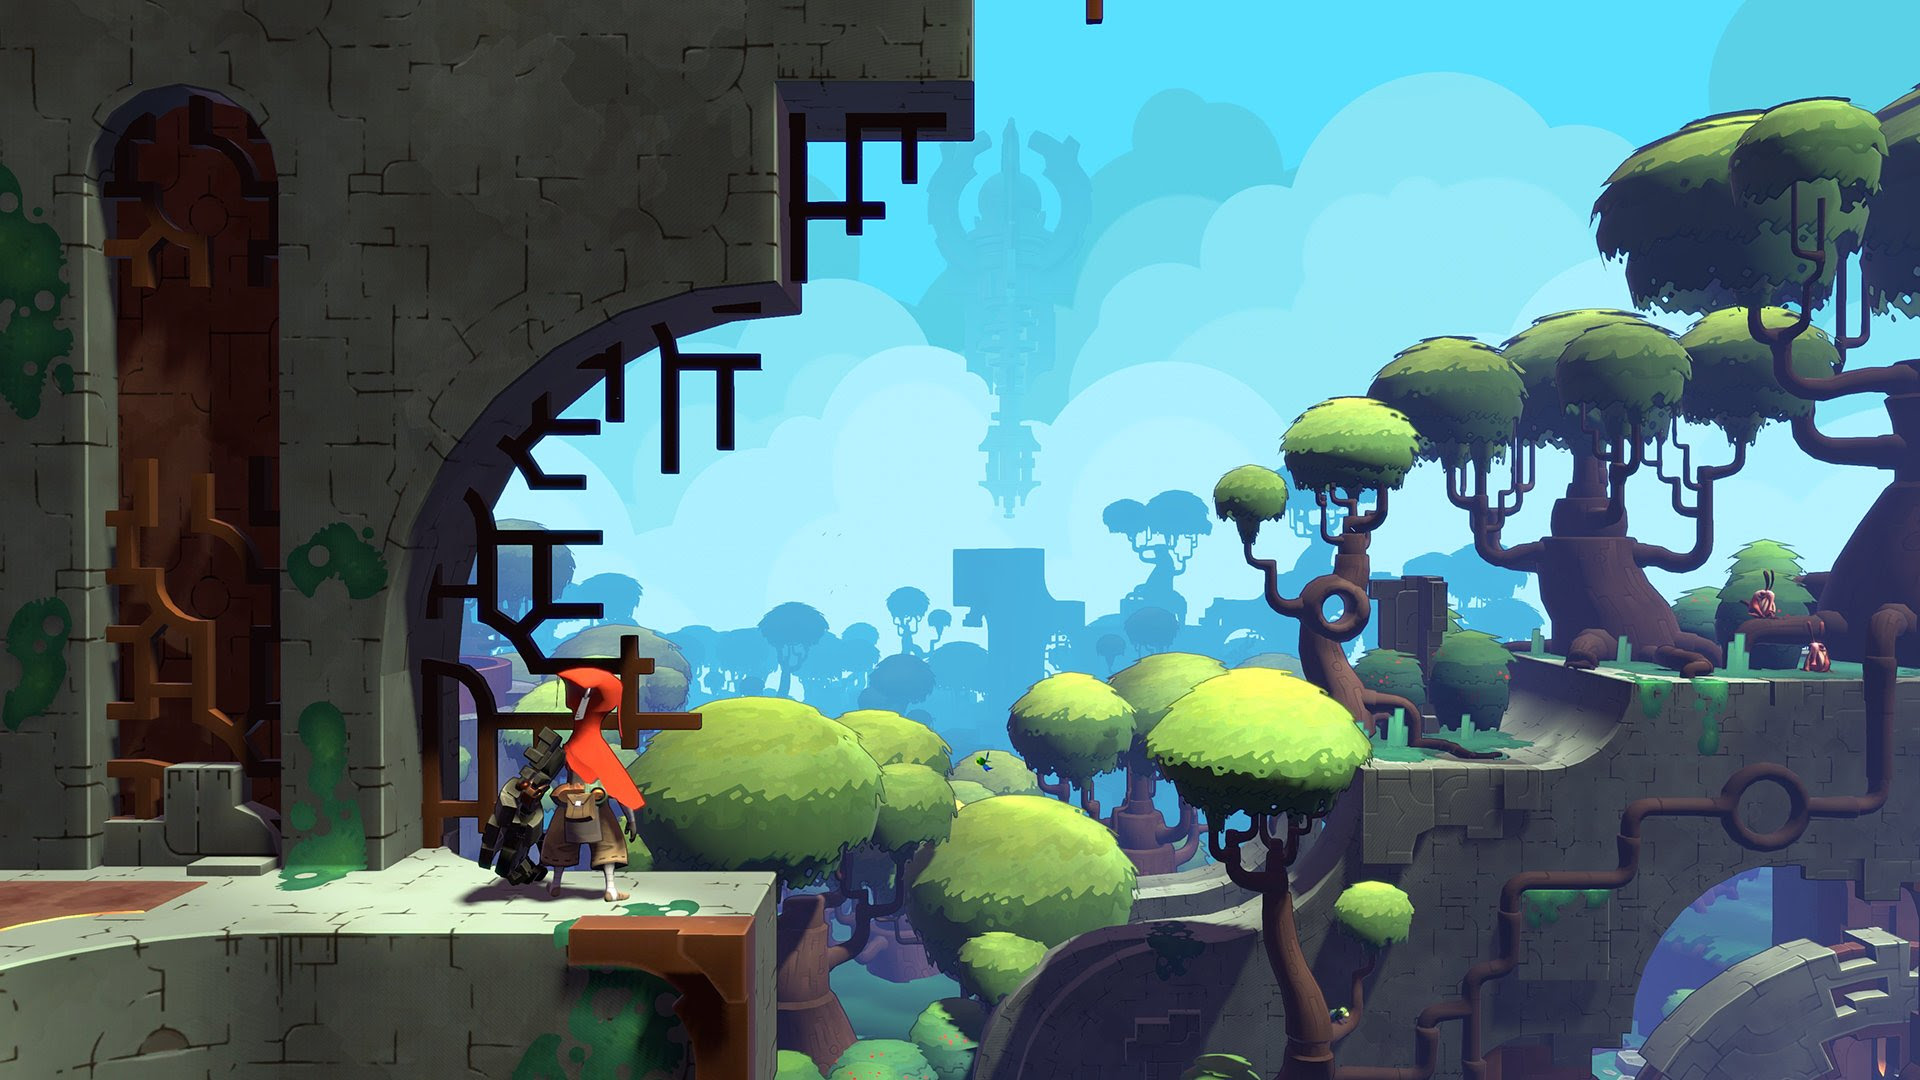 Torchlight team's new game Hob hits PC and PS4 this September screenshot